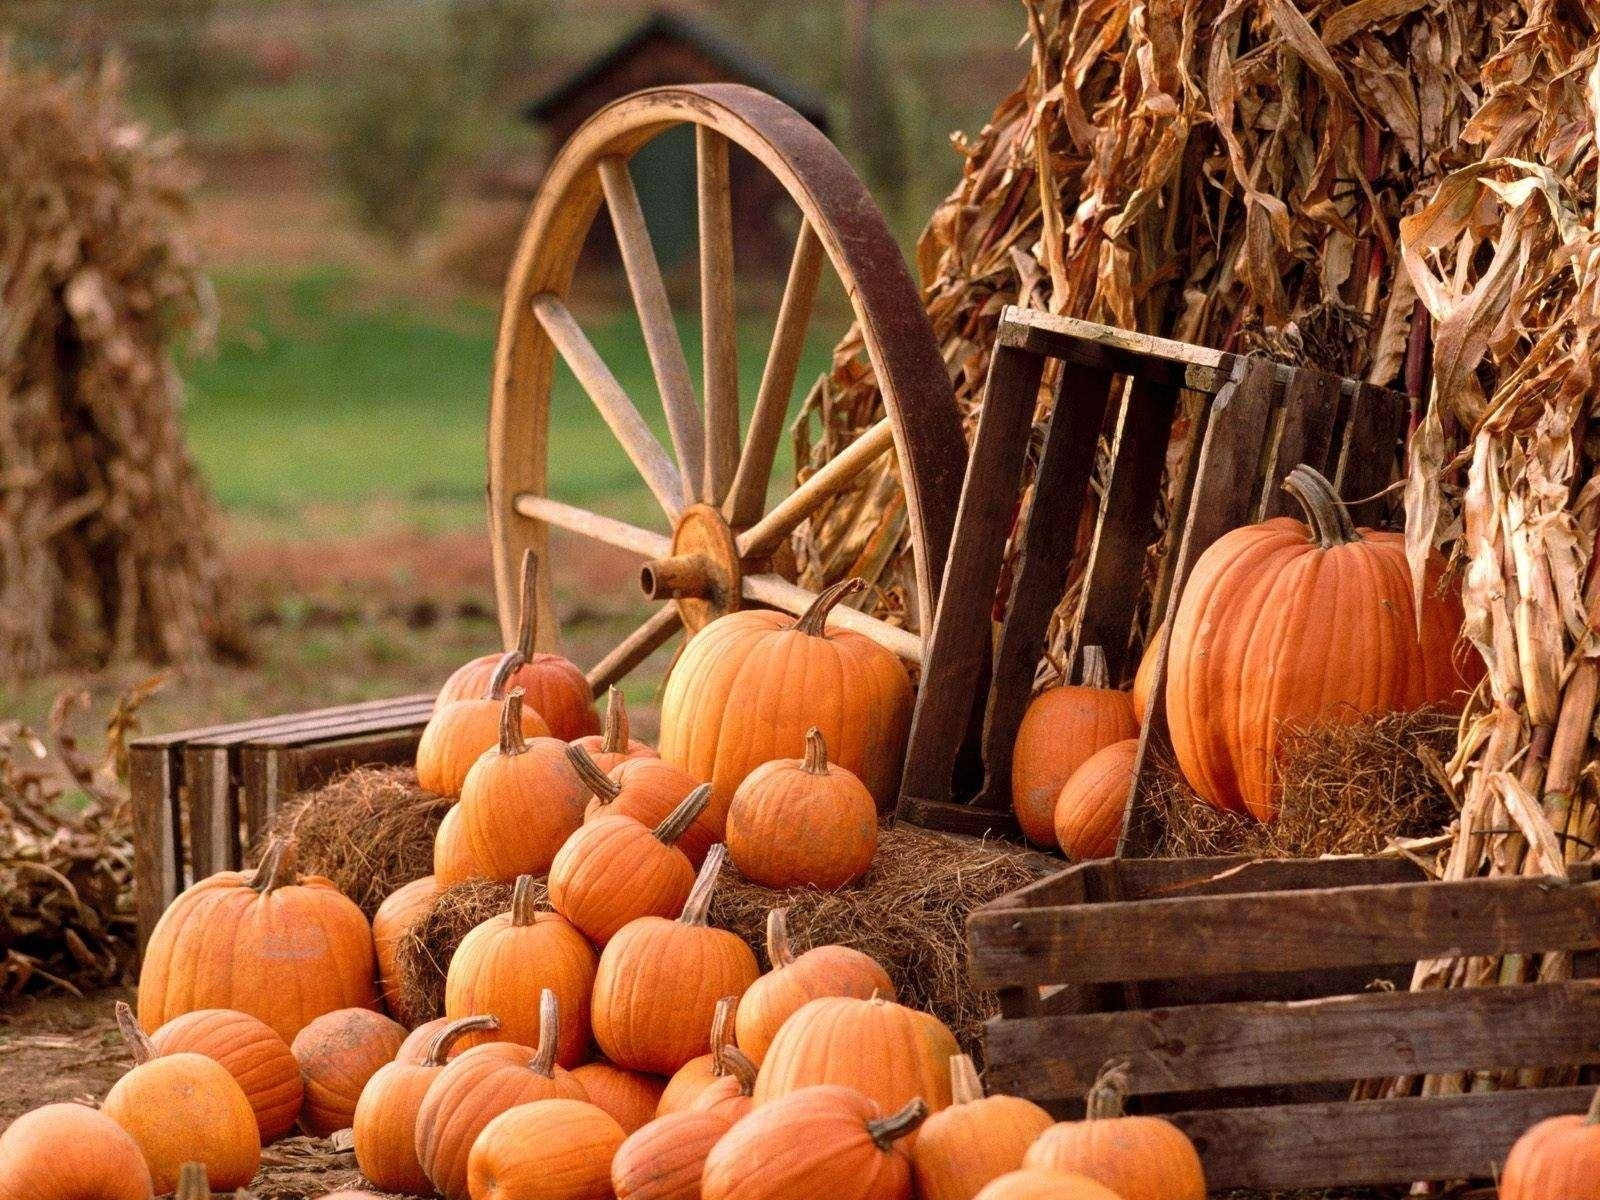 fall wallpaper backgrounds with pumpkins - wallpapersafari